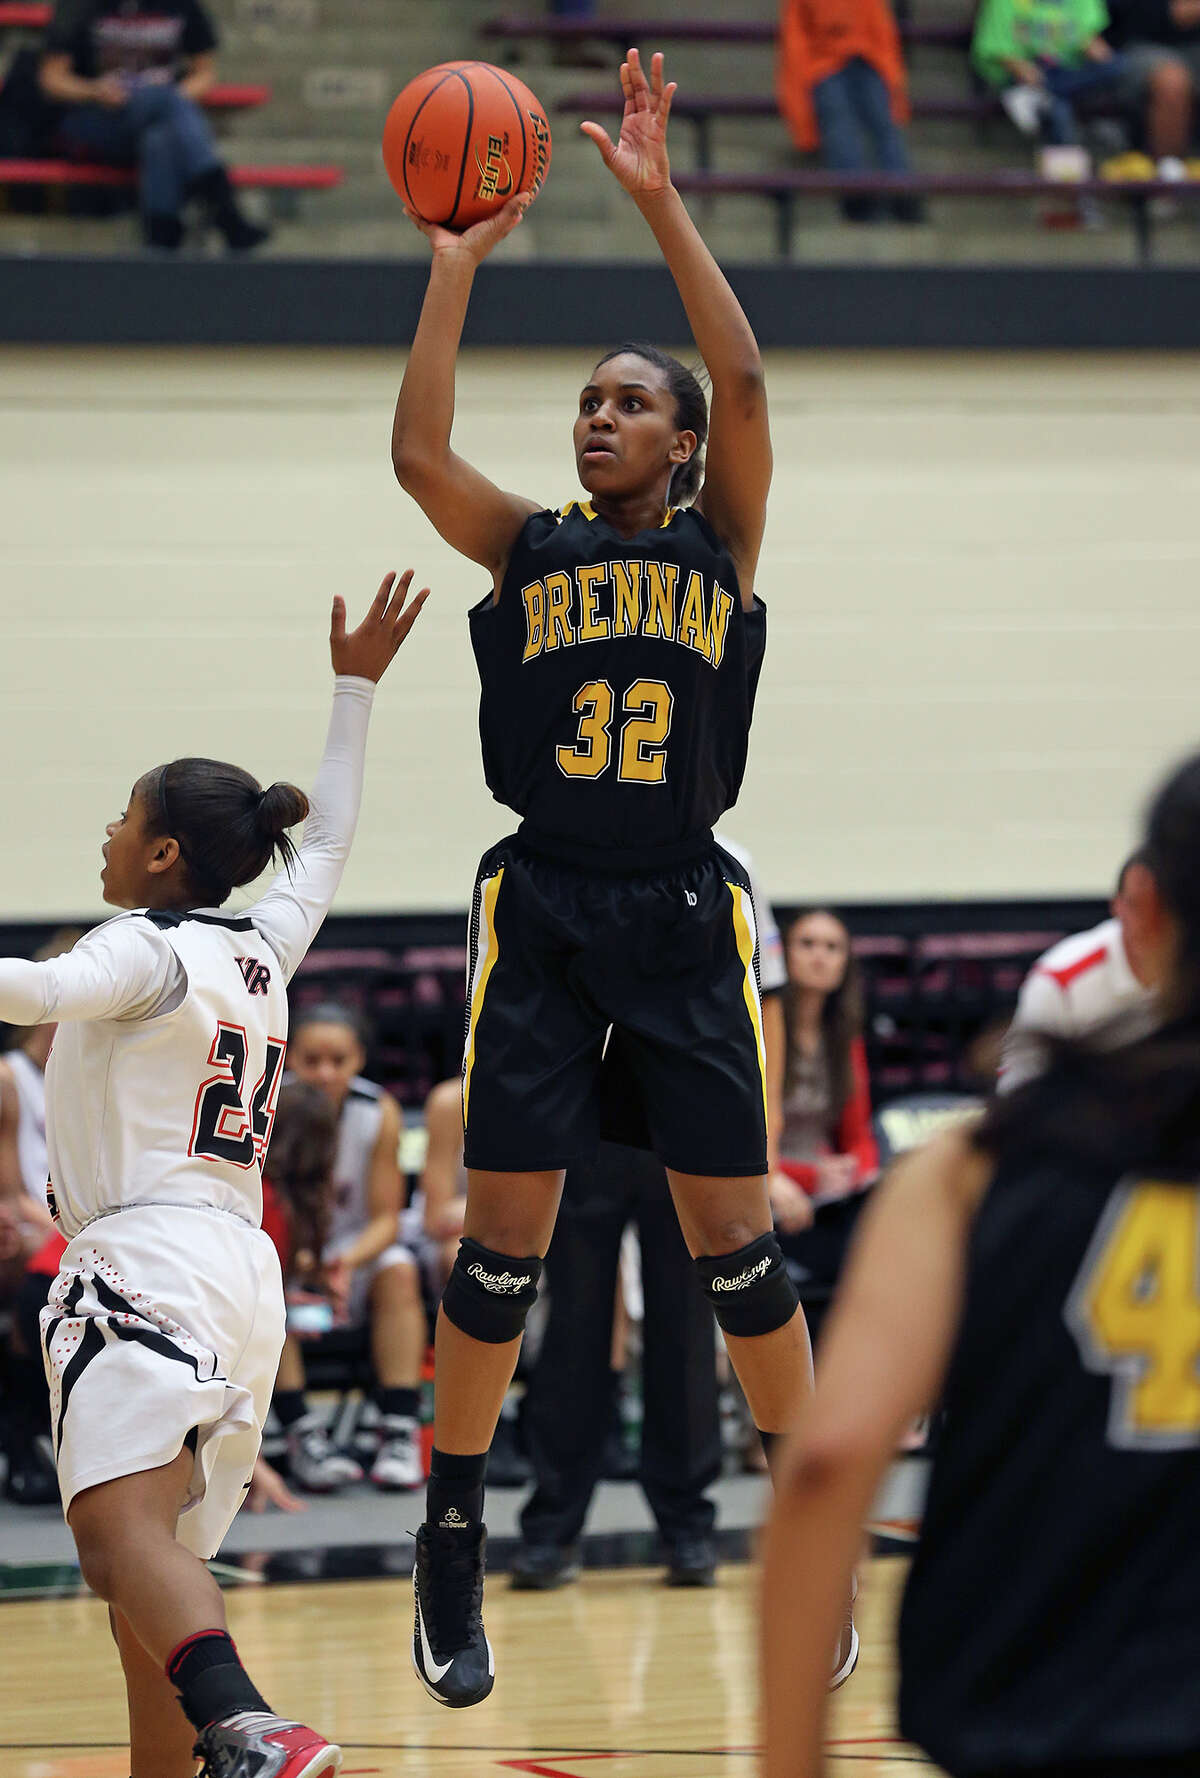 Bears forward Tanaeya Boclair pulls up for a high jumper as Brennan plays Vista Ridge in the girls Region IV-4A championship basketball game at Littleton Gym on February 23, 2013.